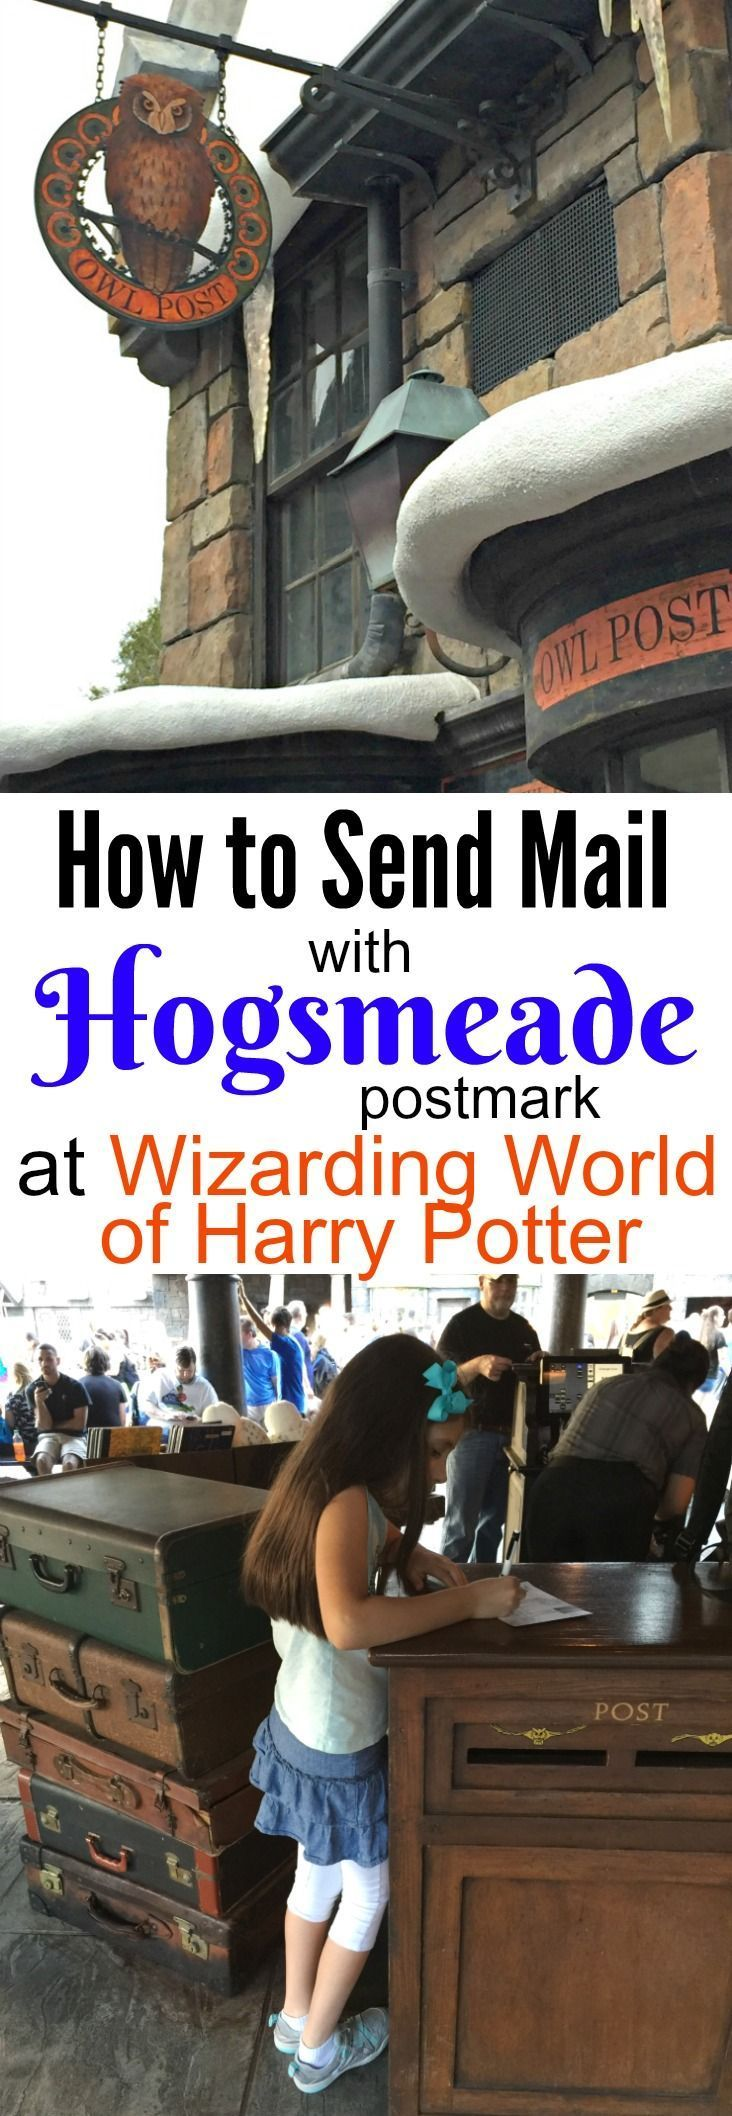 Send Mail from Owl Post – The Wizarding World of Harry Potter